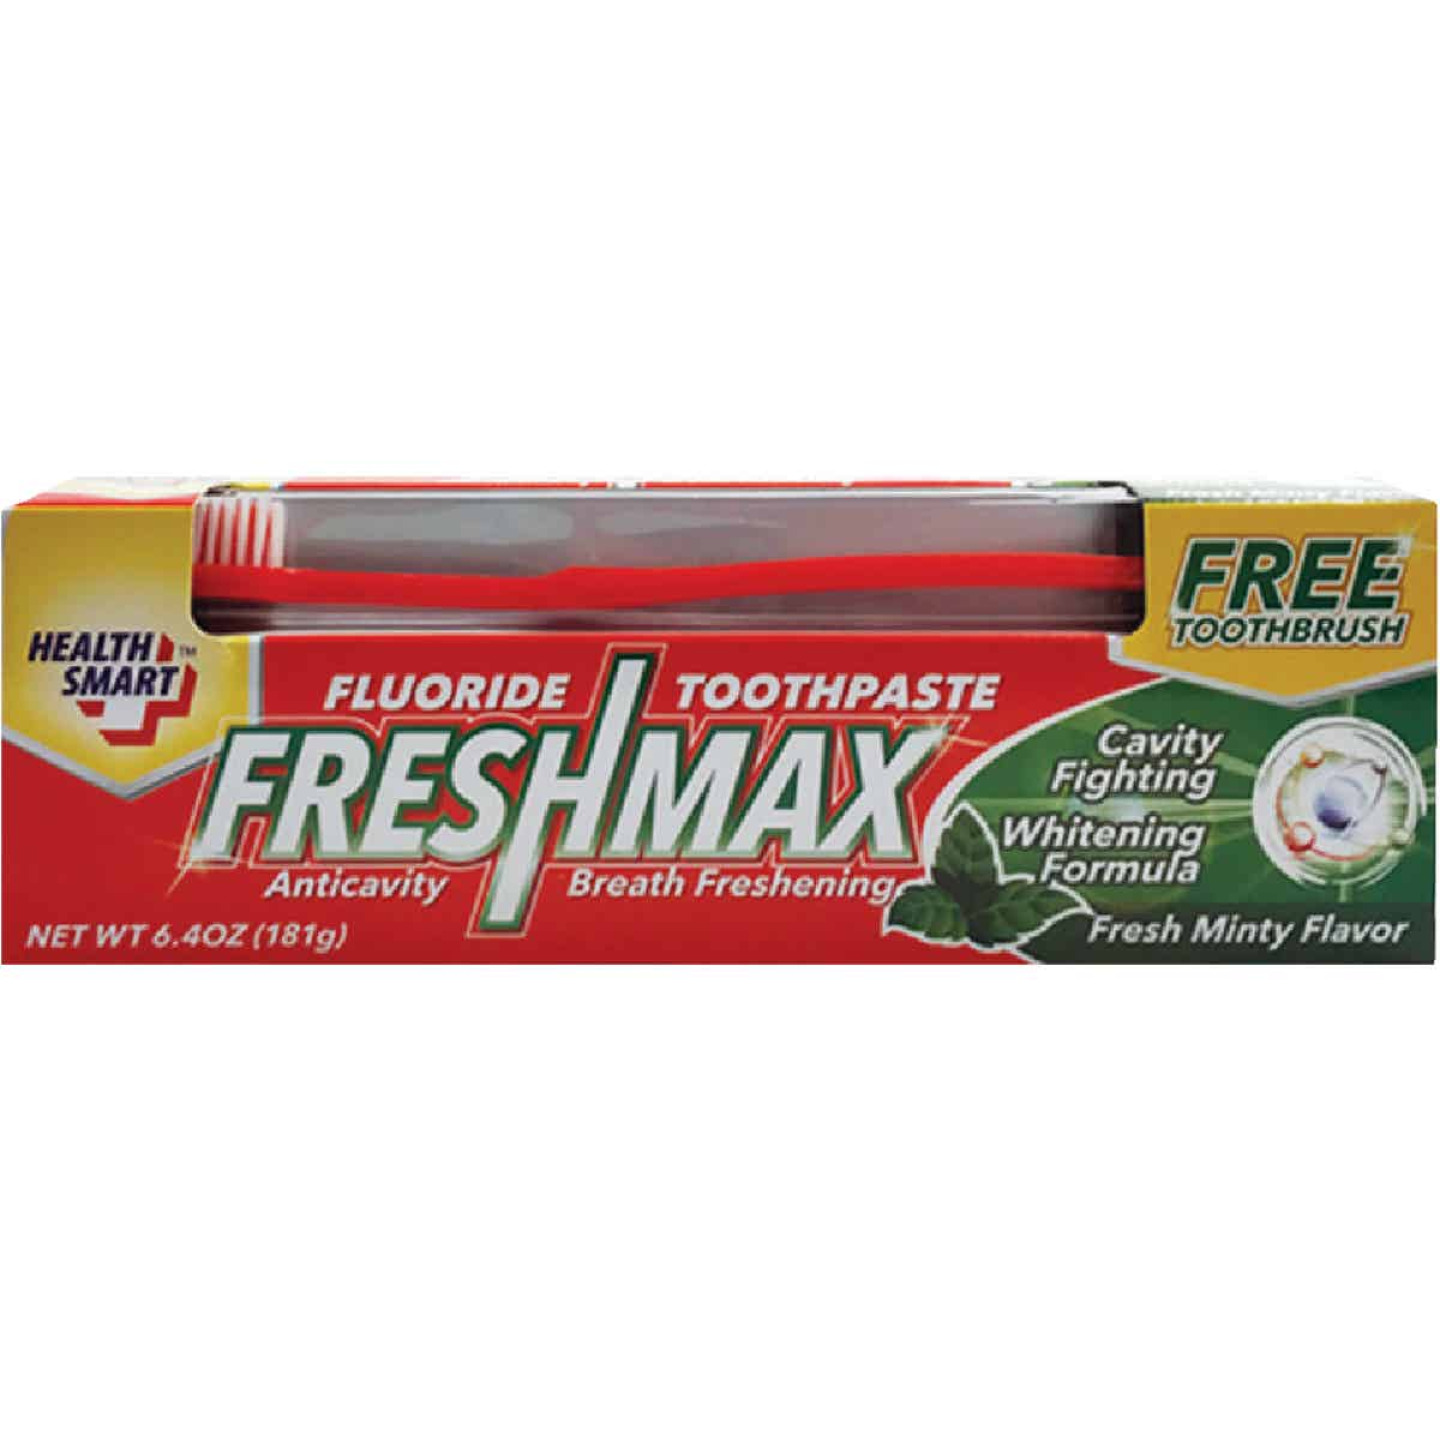 Health Smart FreshMax 6.4 Oz. Mint Flouride Toothpaste with Toothbrush Image 1